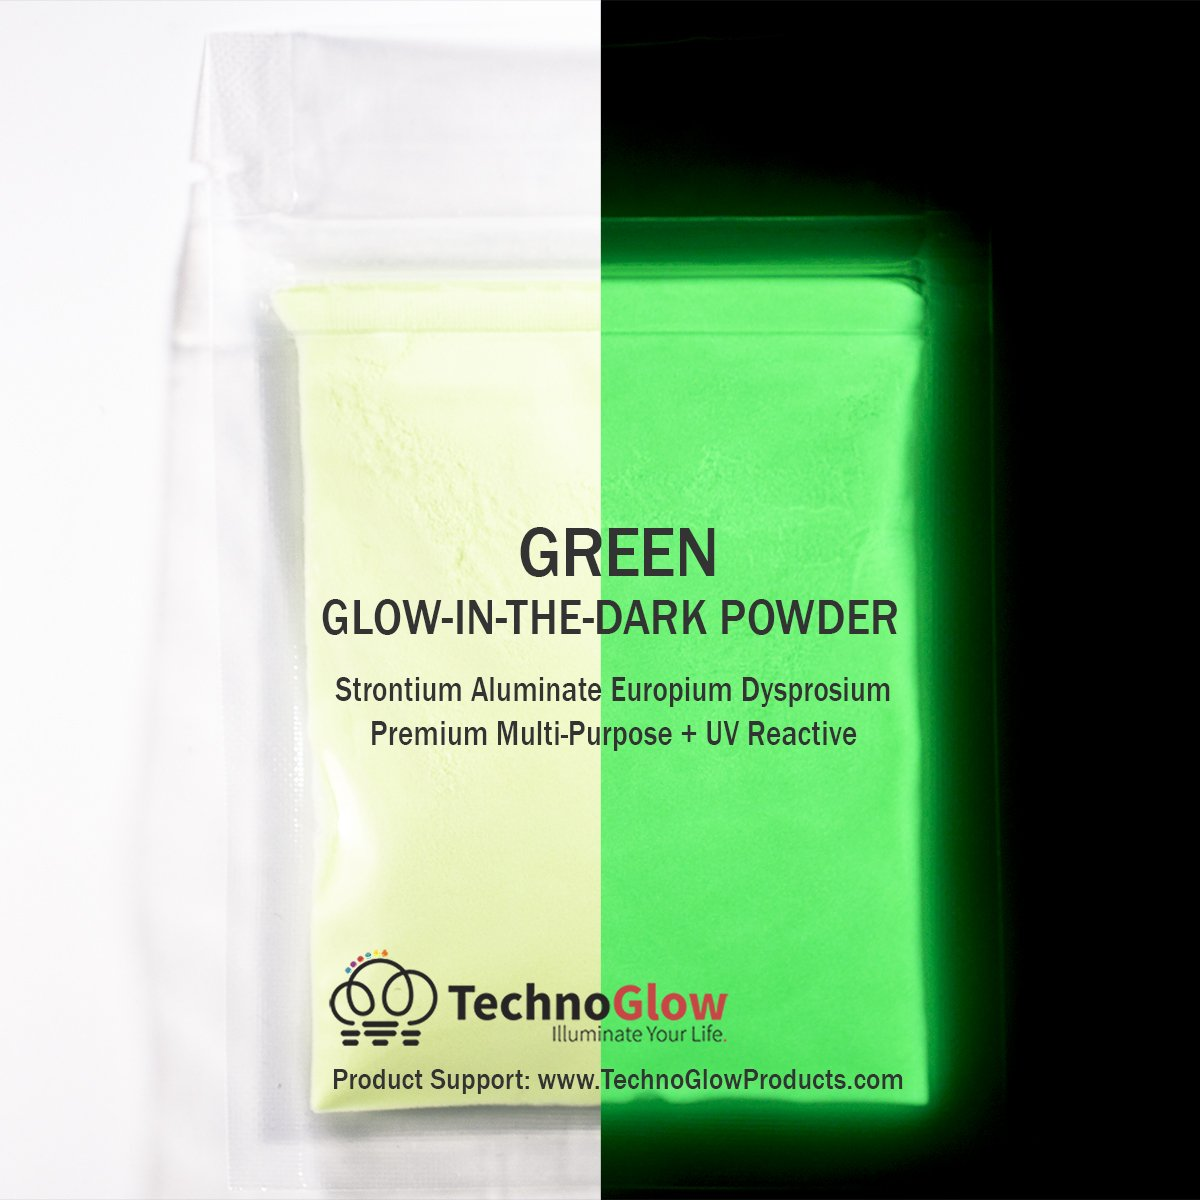 Green Glow in the Dark & UV Powder; 100-150 Microns (8 OZ) Techno Glow Inc P02-GRN-X